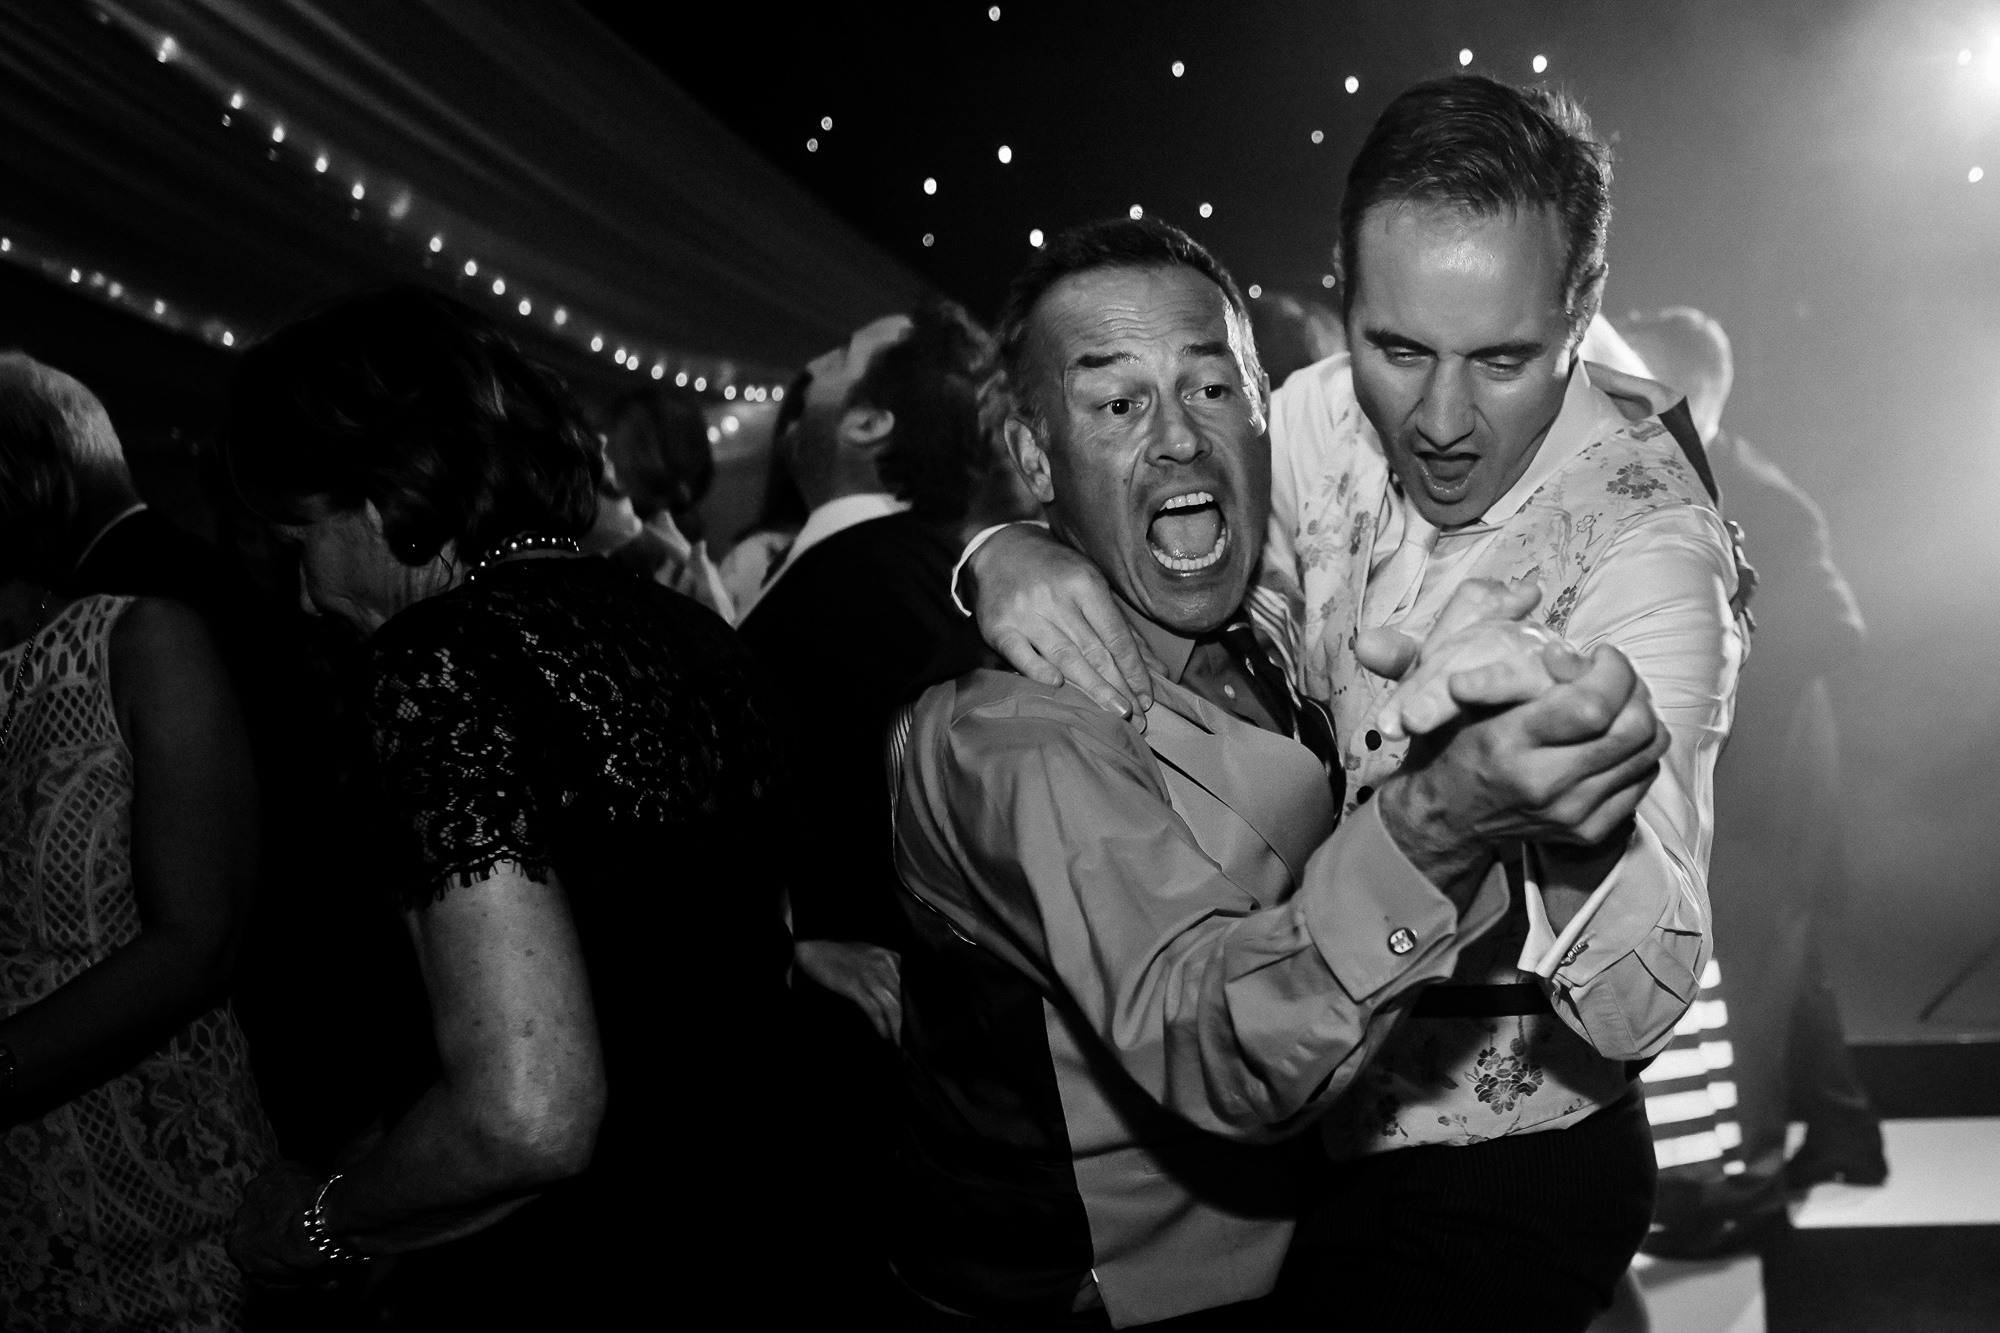 Cheshire wedding at home wedding photography (49 of 49).jpg